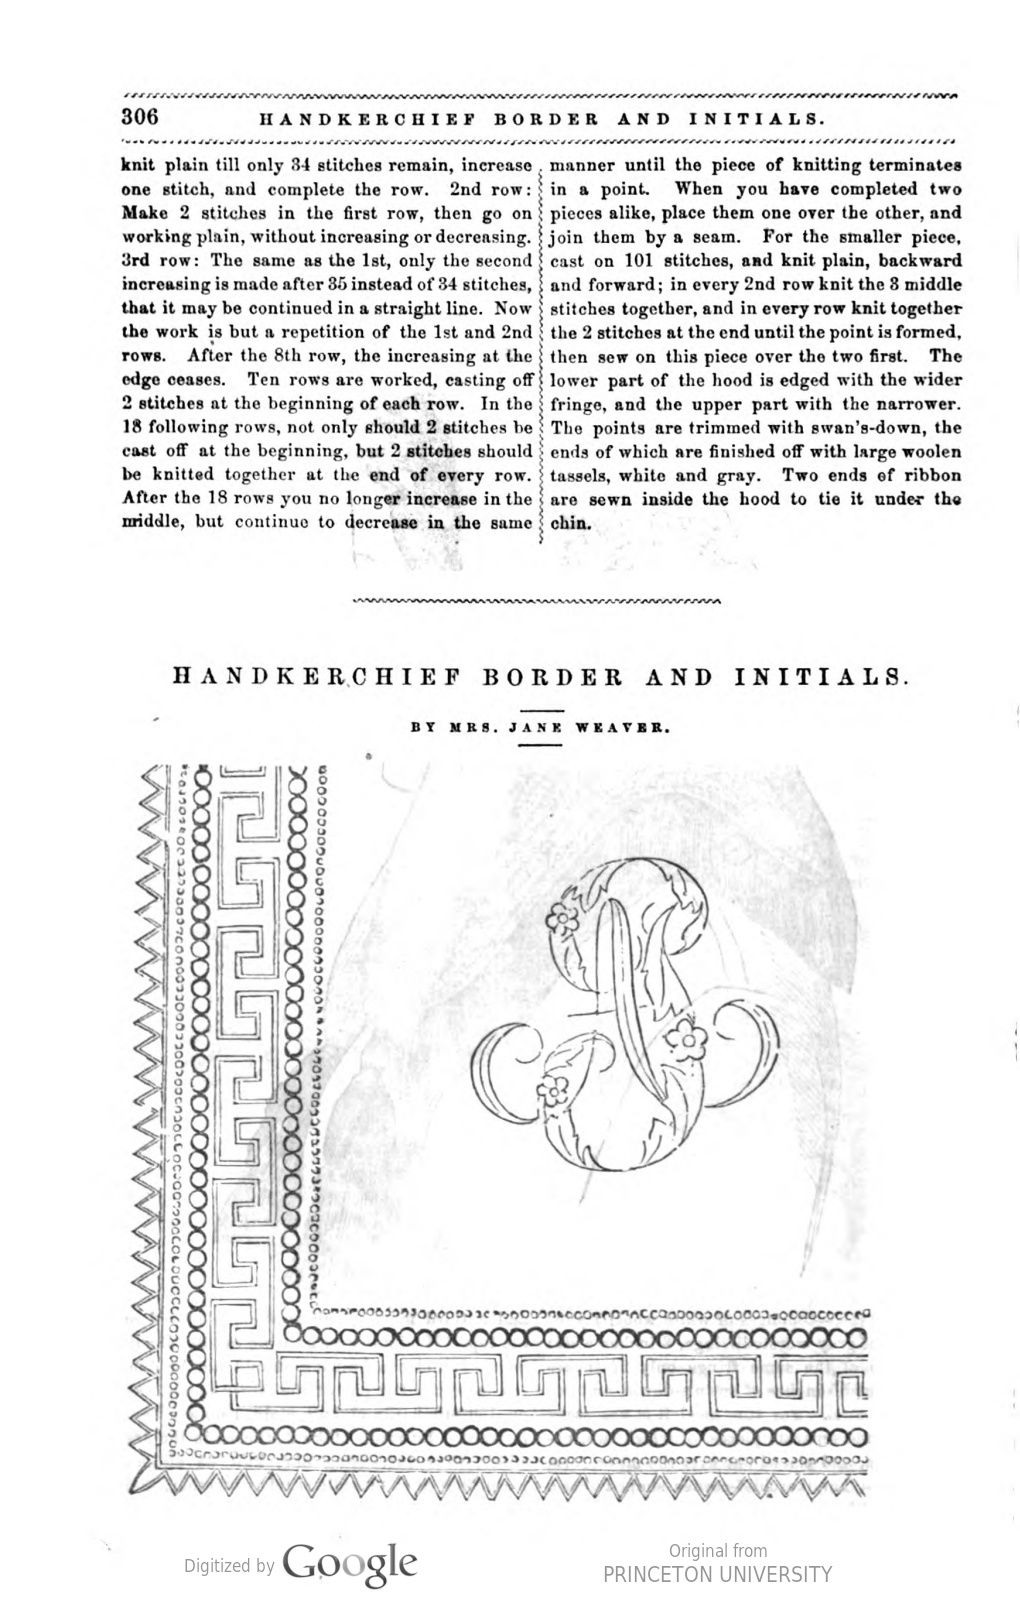 image of page 306 Peterson's magazine v.45-46. 1864